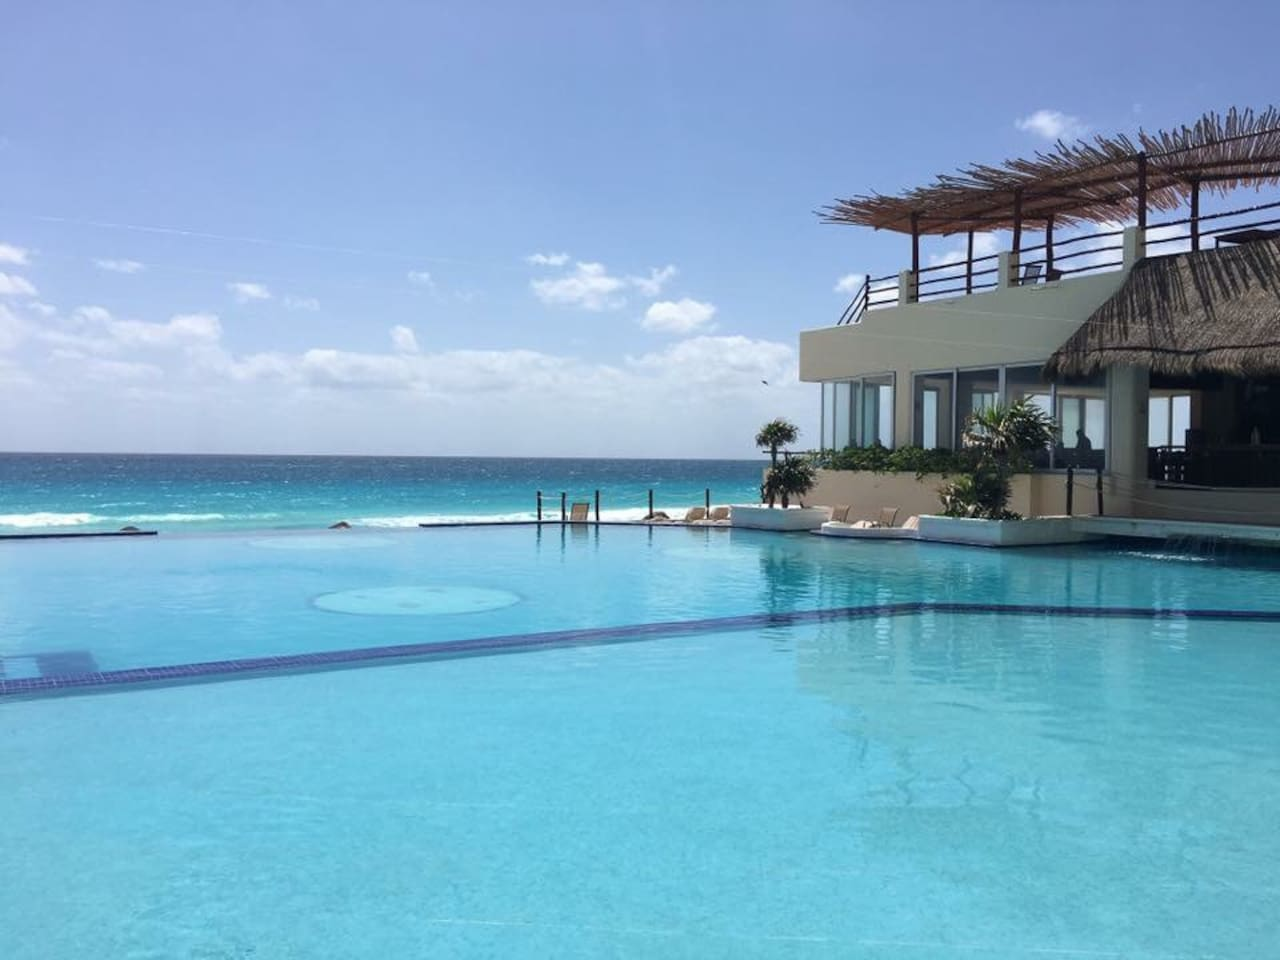 Infinity pool, private beach, restaurant and pool bar with amazing views.